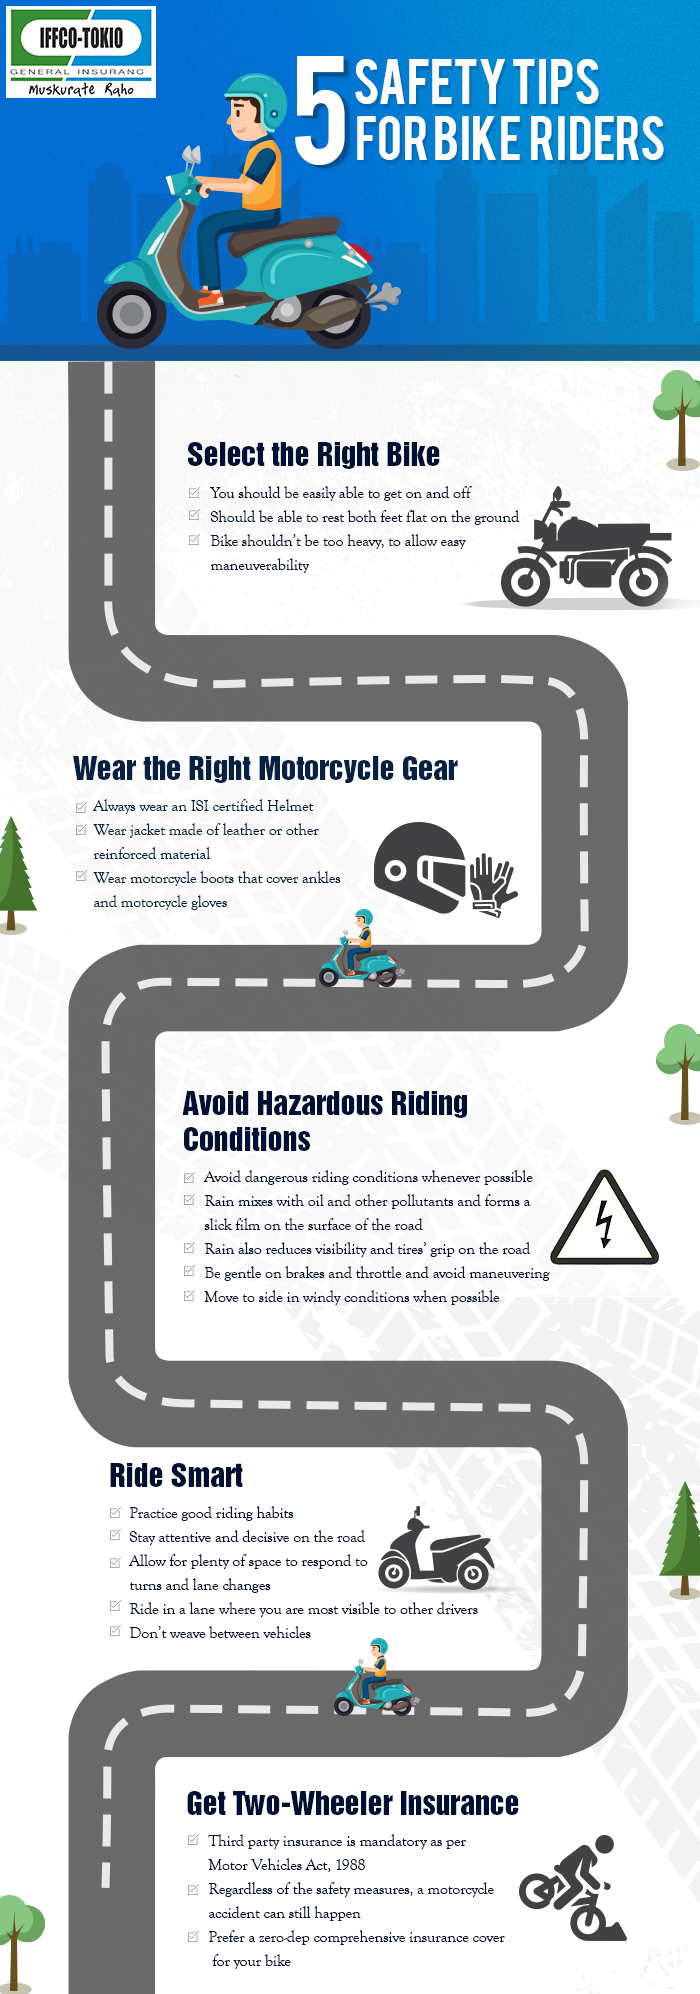 5 Safety Tips For Bike Riders 1 Select The Right Bike 2 Wear